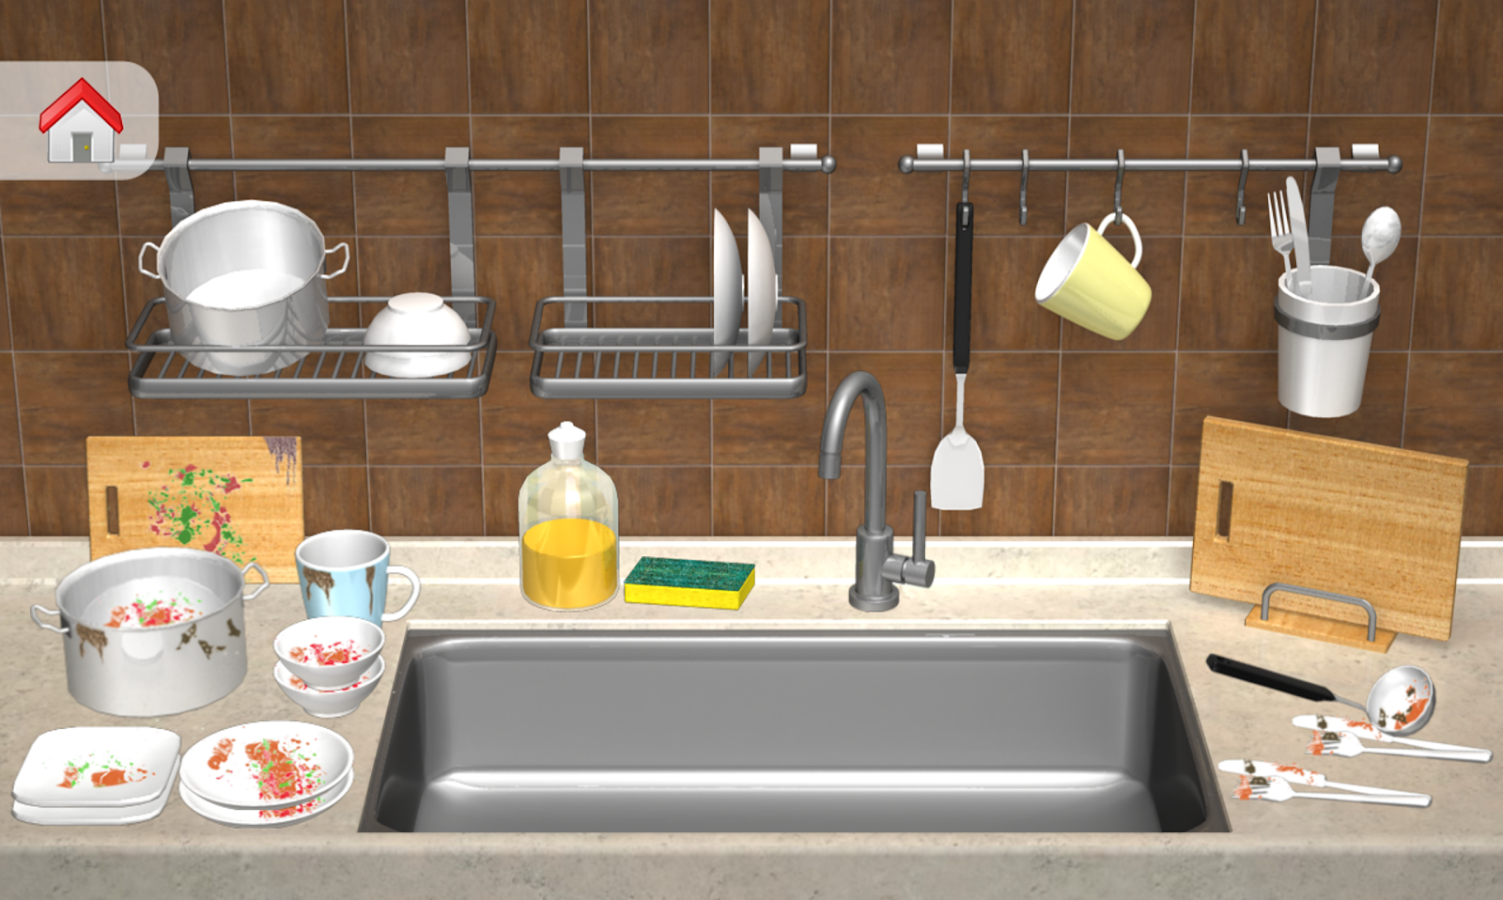 Clean up bathroom games - Cleaning Games Clean House Screenshot